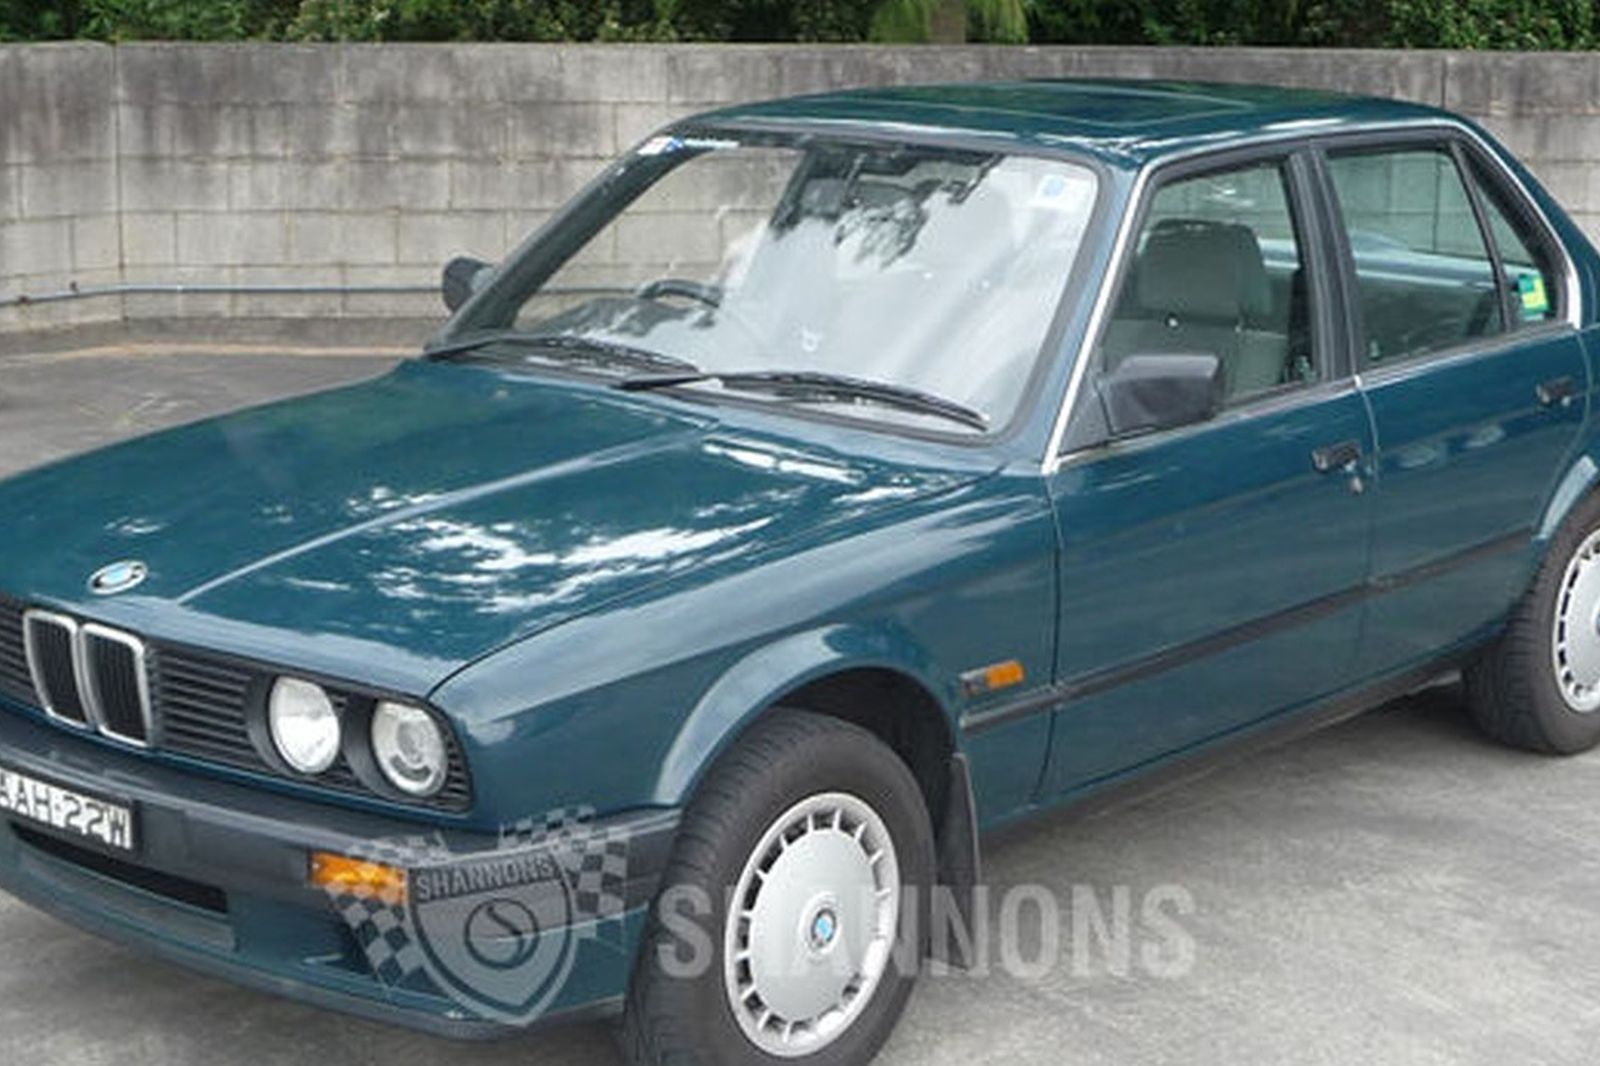 sold: bmw 318i sedan auctions - lot 6 - shannons